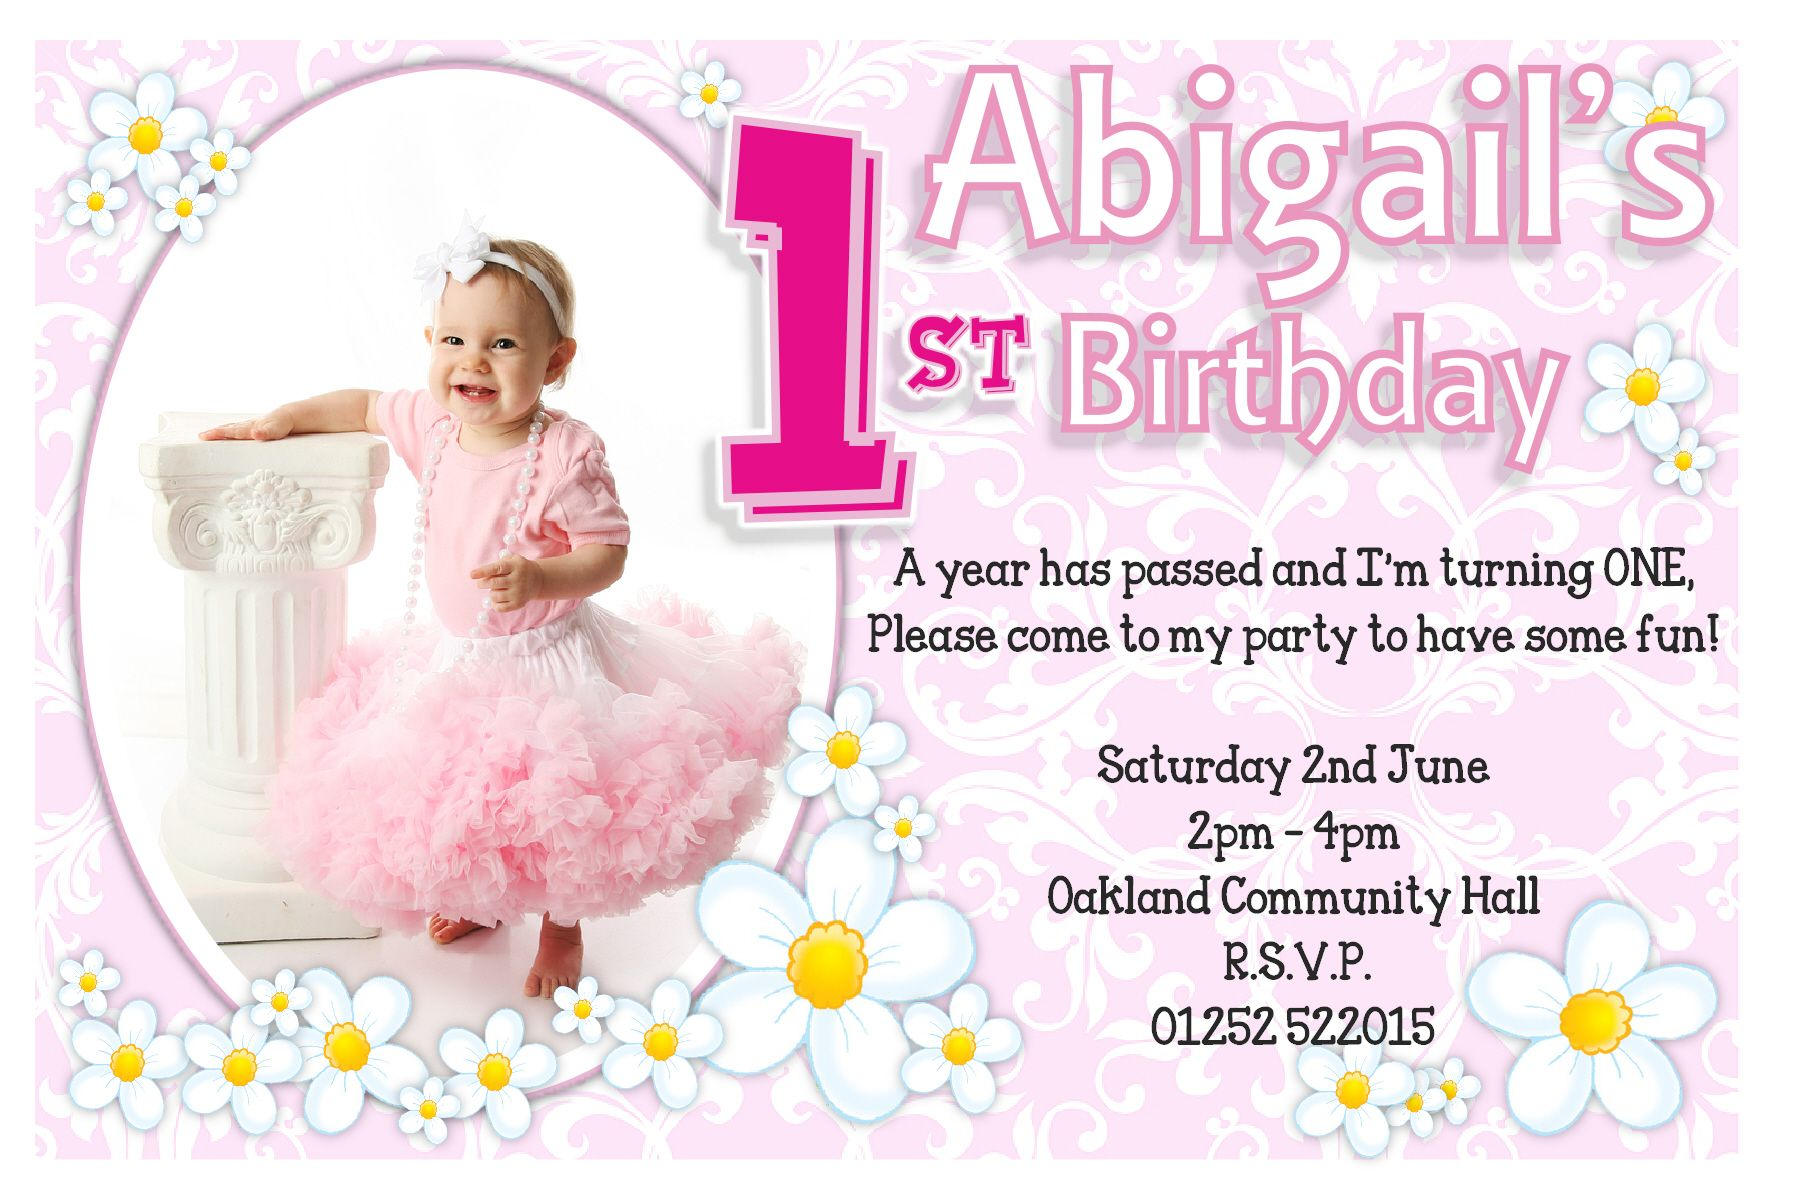 1 birthday invitation templates ; Baby-Girl-1St-Birthday-Invitation-Templates-and-get-inspired-to-create-your-own-birthday-Invitation-design-with-this-ideas-1